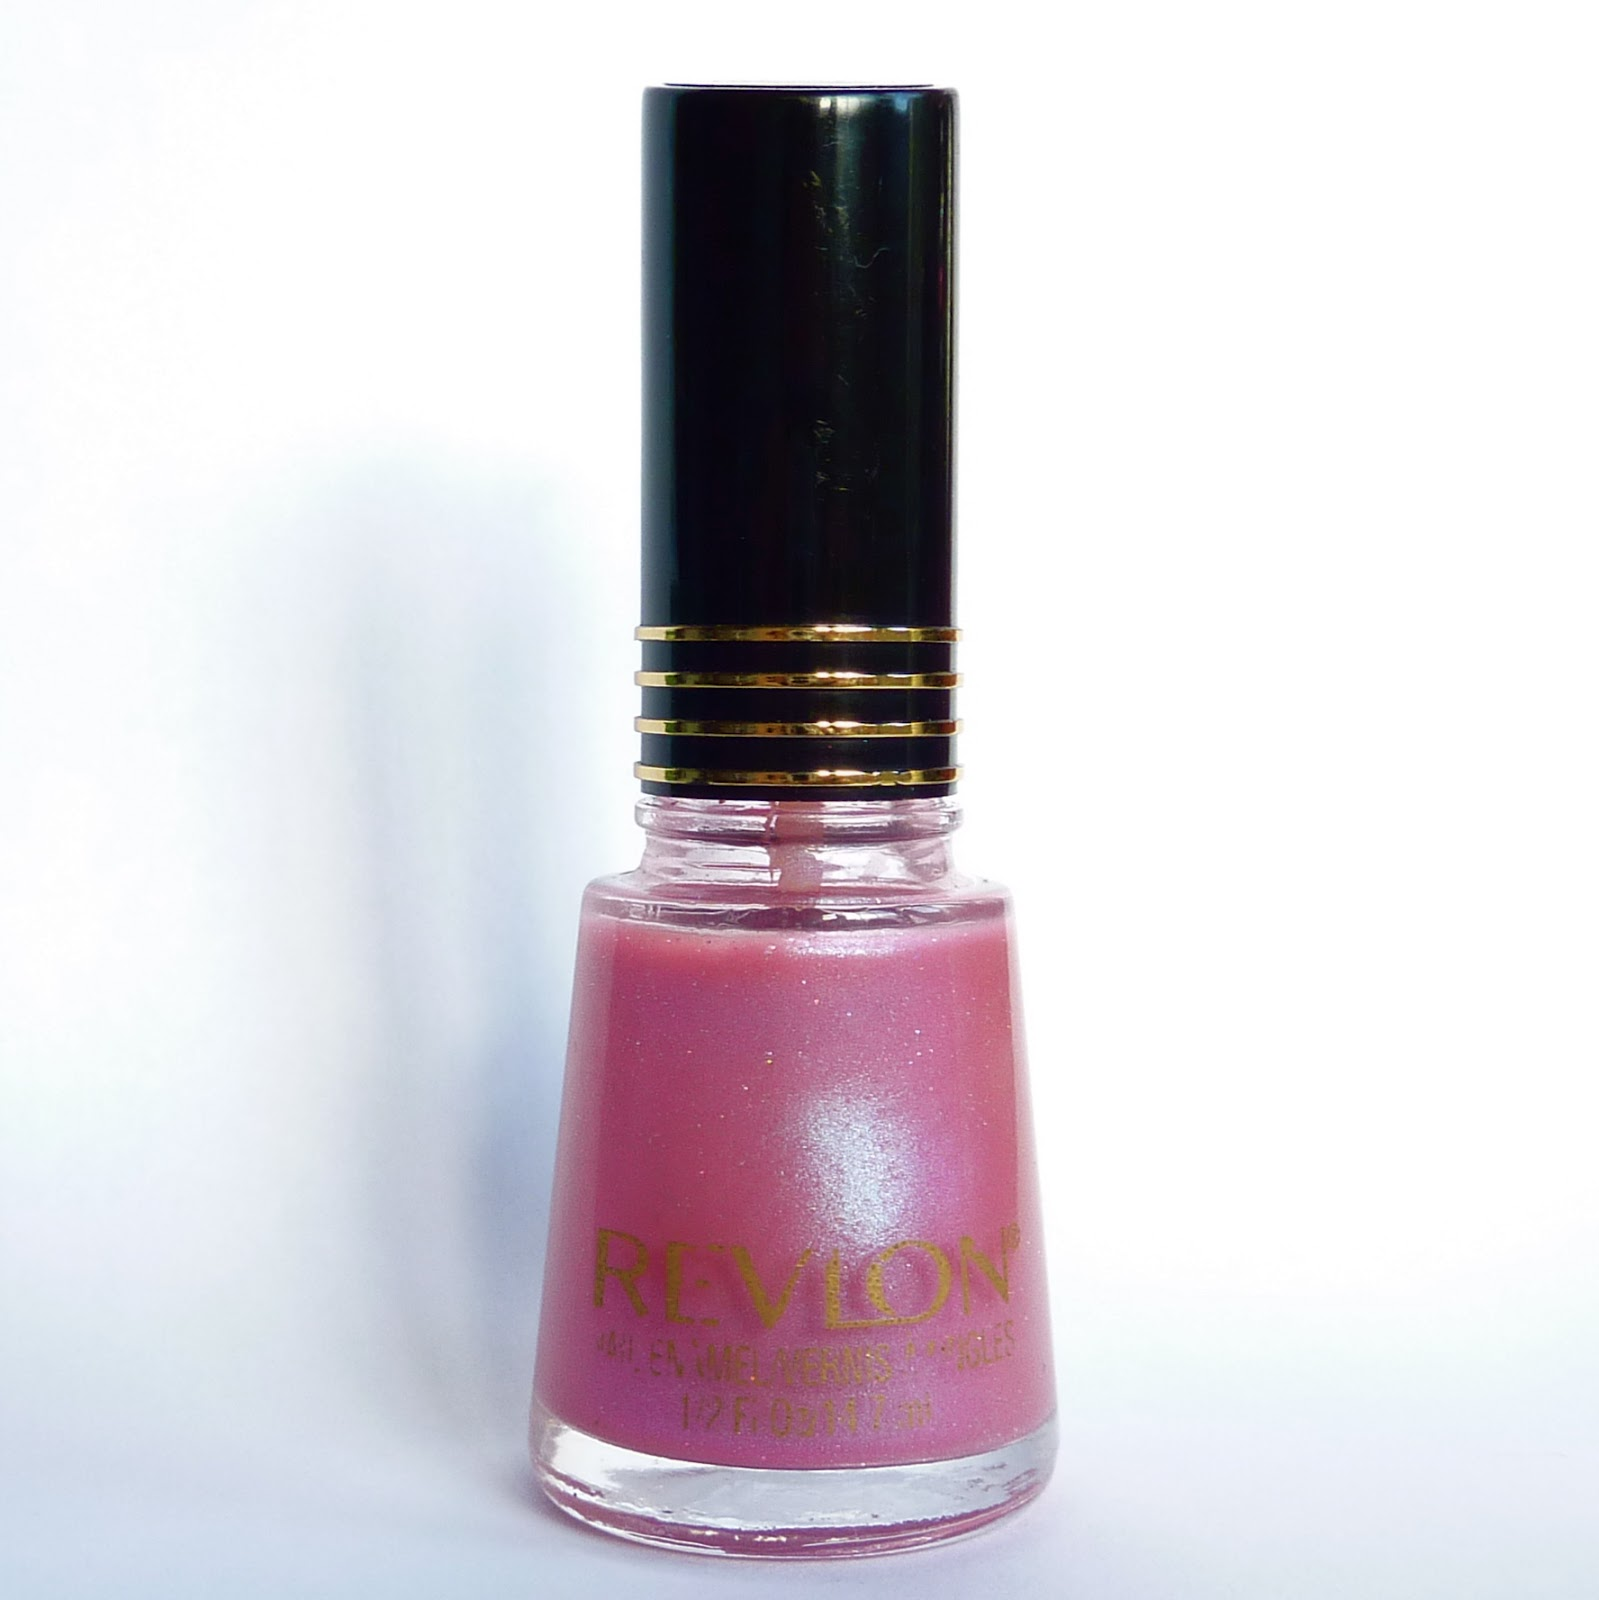 Revlon Nail Polishes: Polish, Plants & More....: Revlon's Wild Orchid